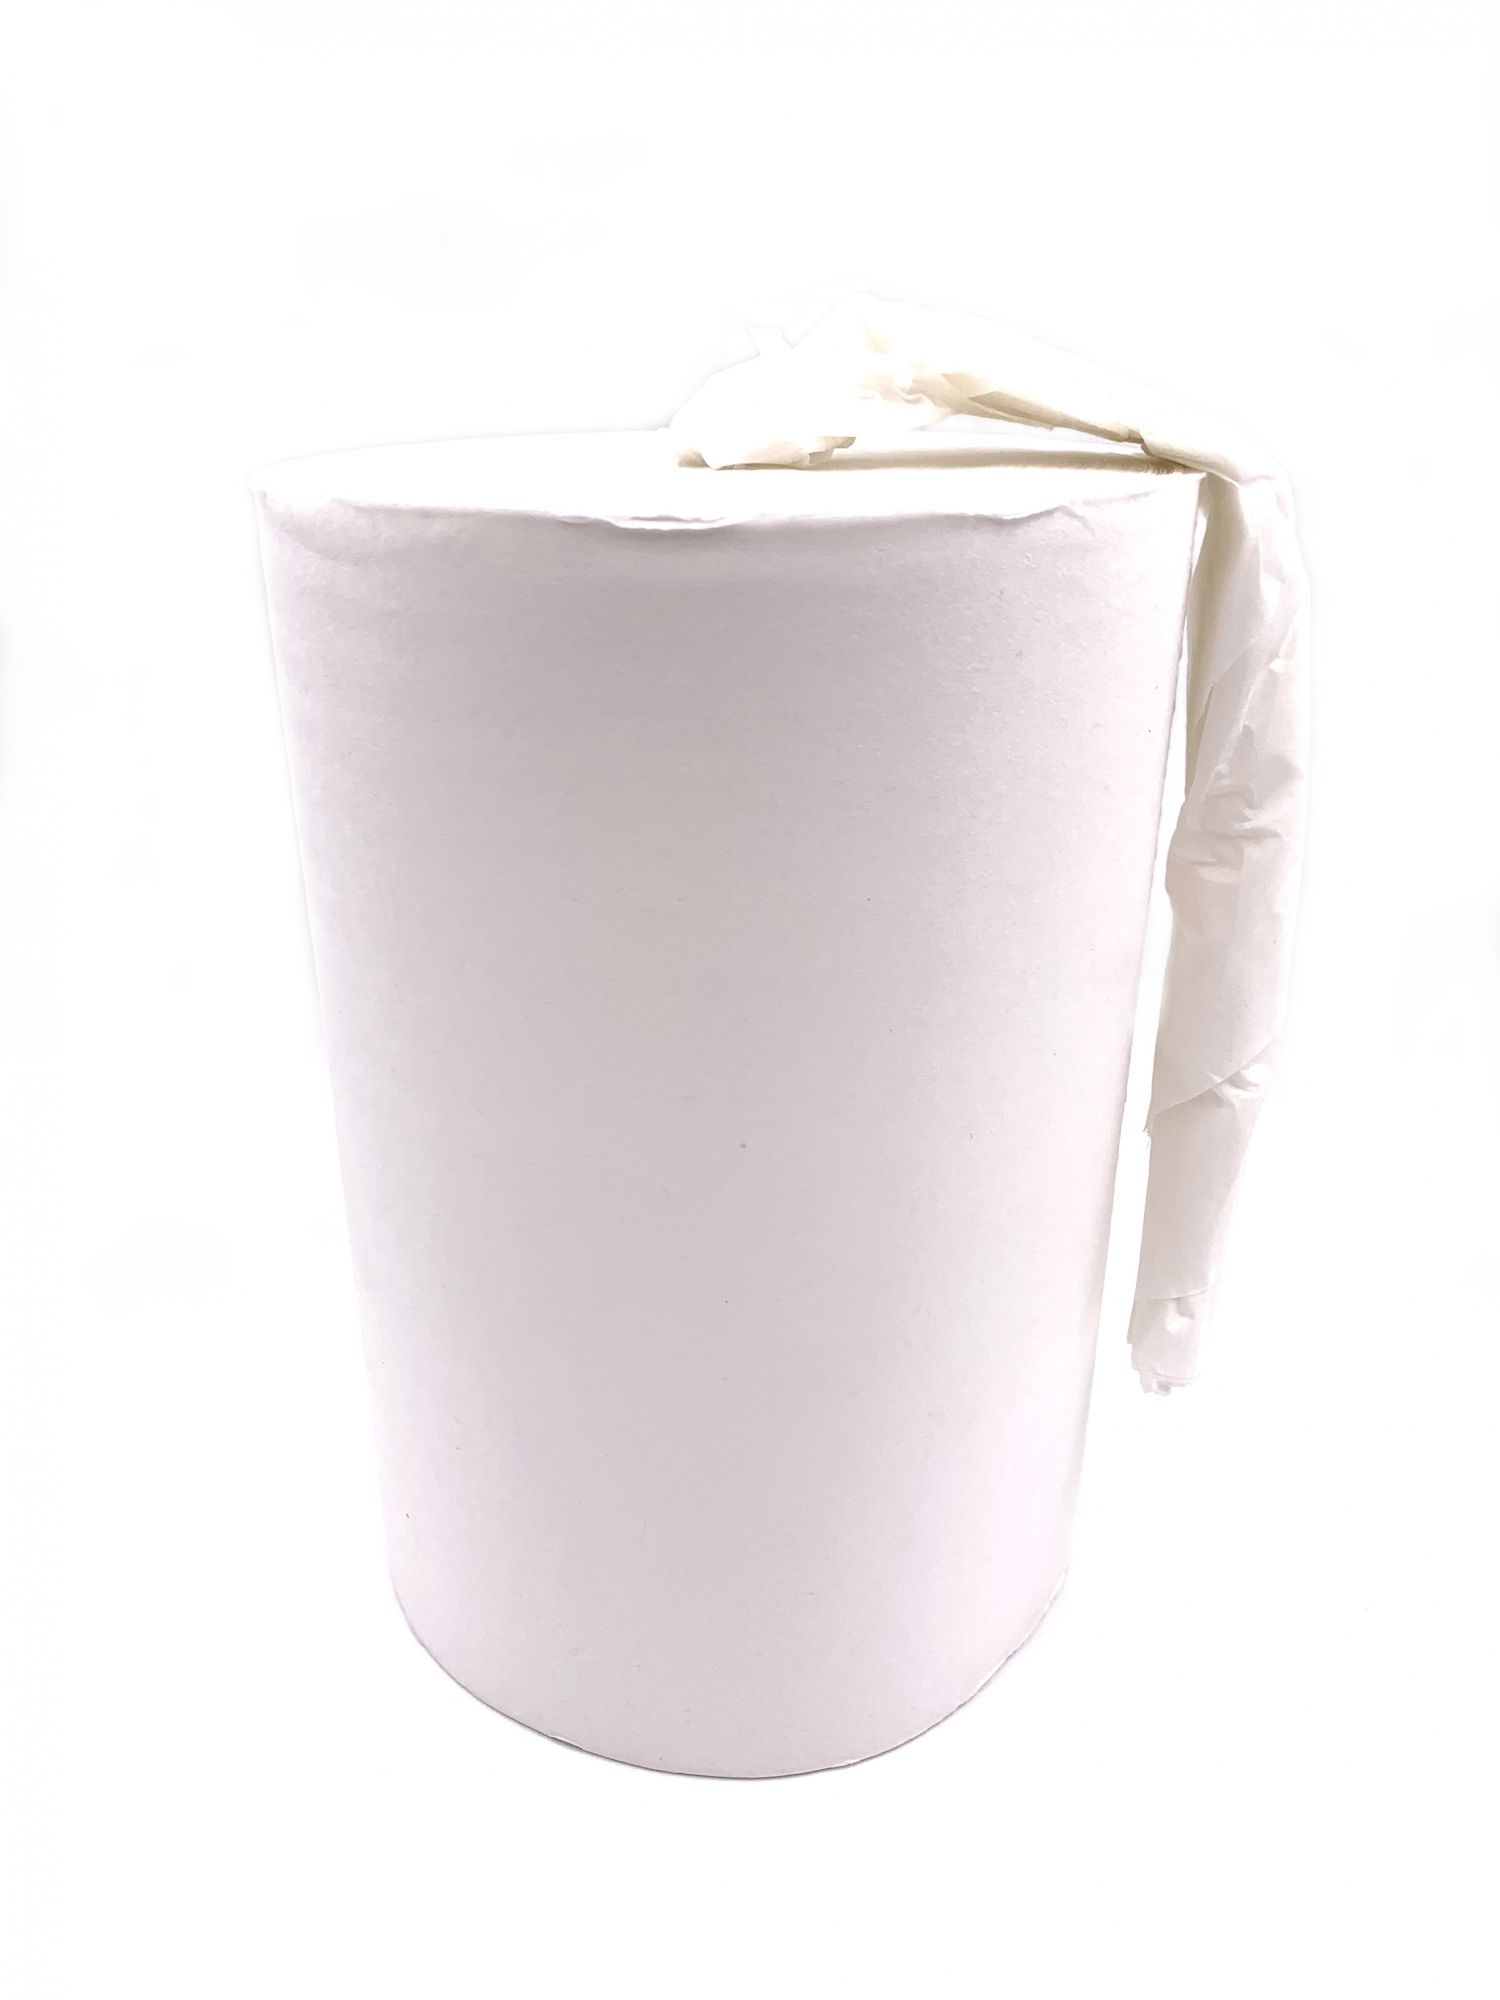 midi roll of cleaning cloth with cellulose